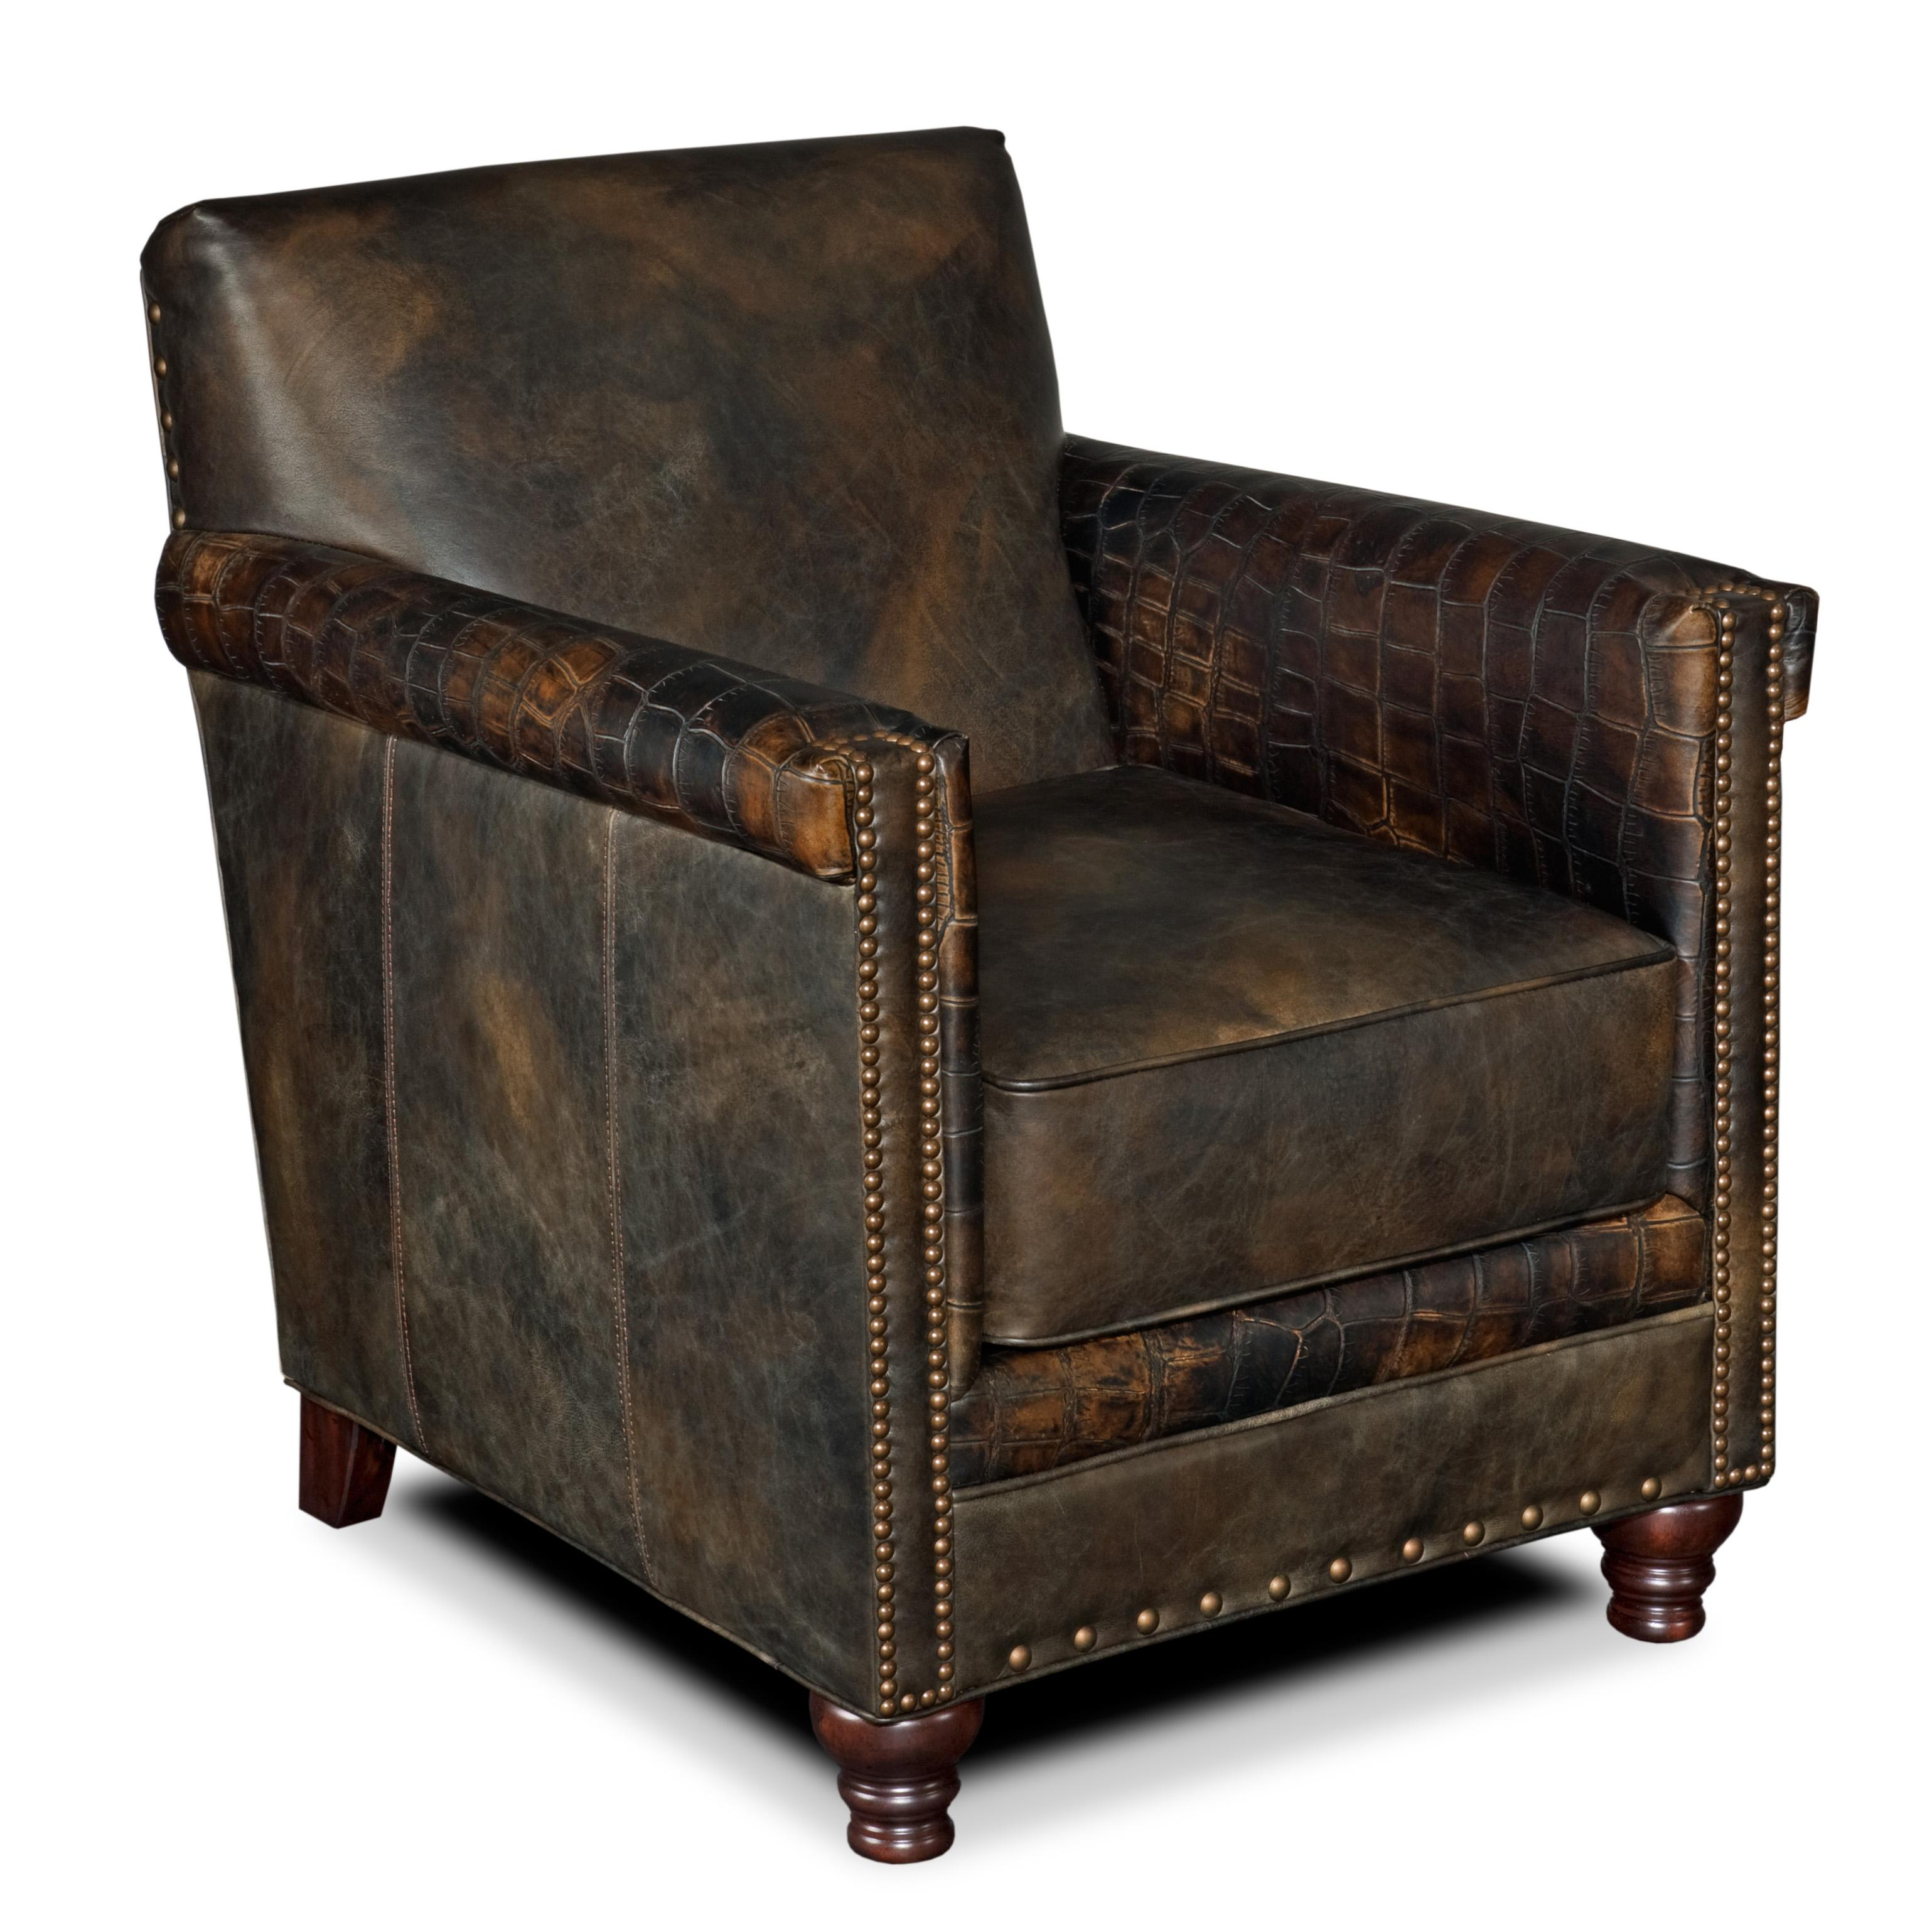 Hooker Furniture Club Chairs Potter Upholstered Club Chair   Item Number:  CC719 089